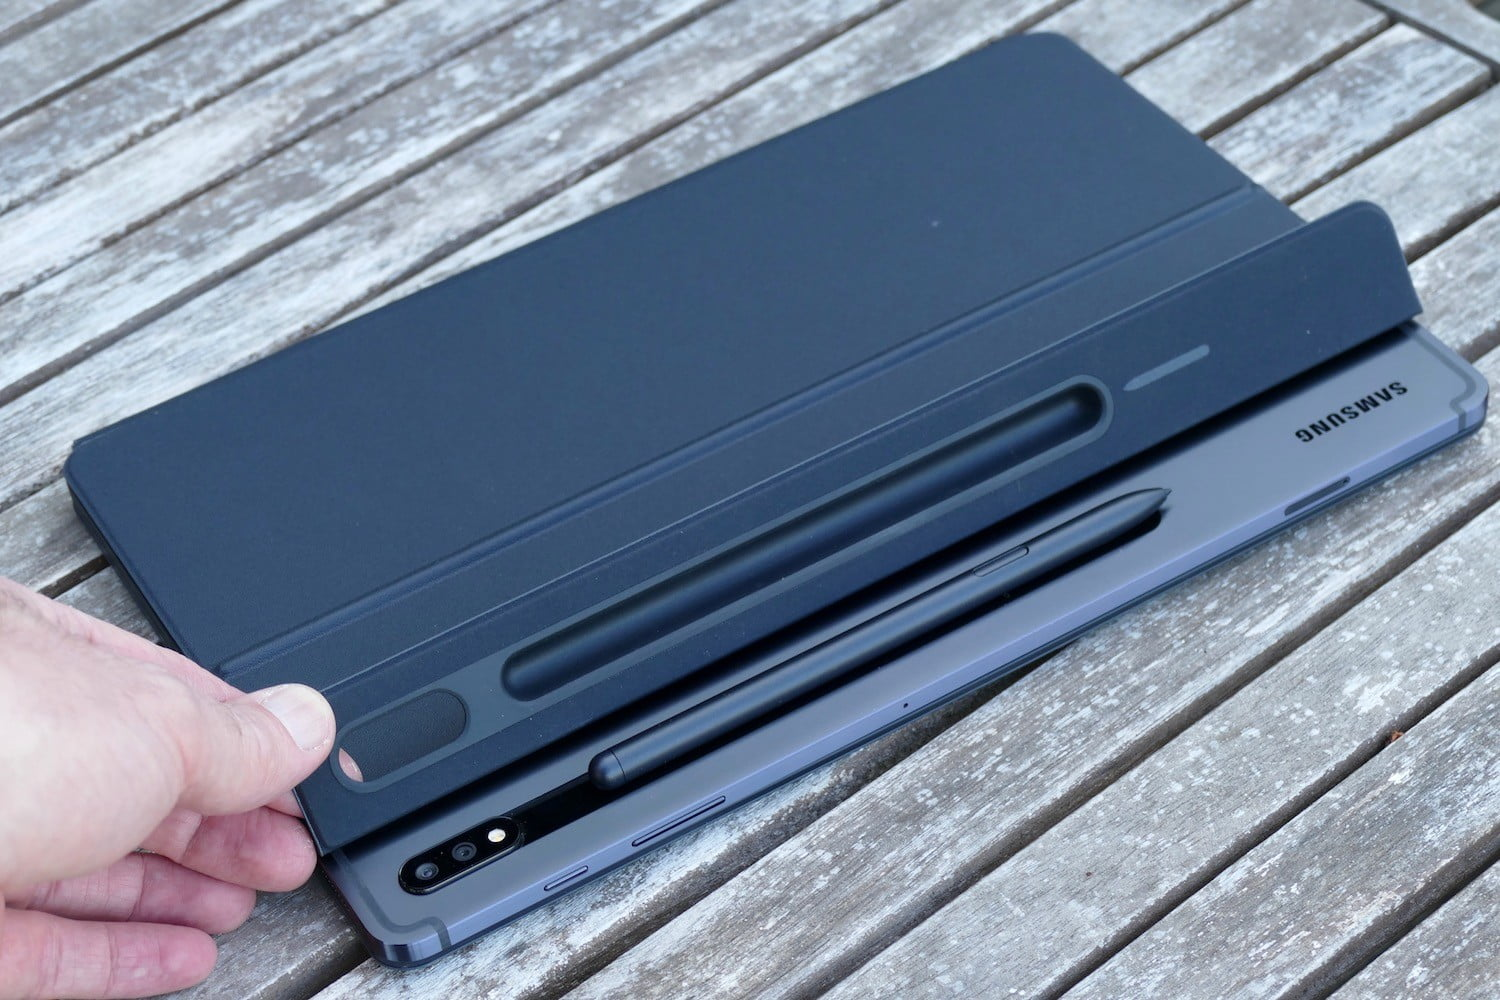 samsung galaxy tab s7 plus review s pen holder